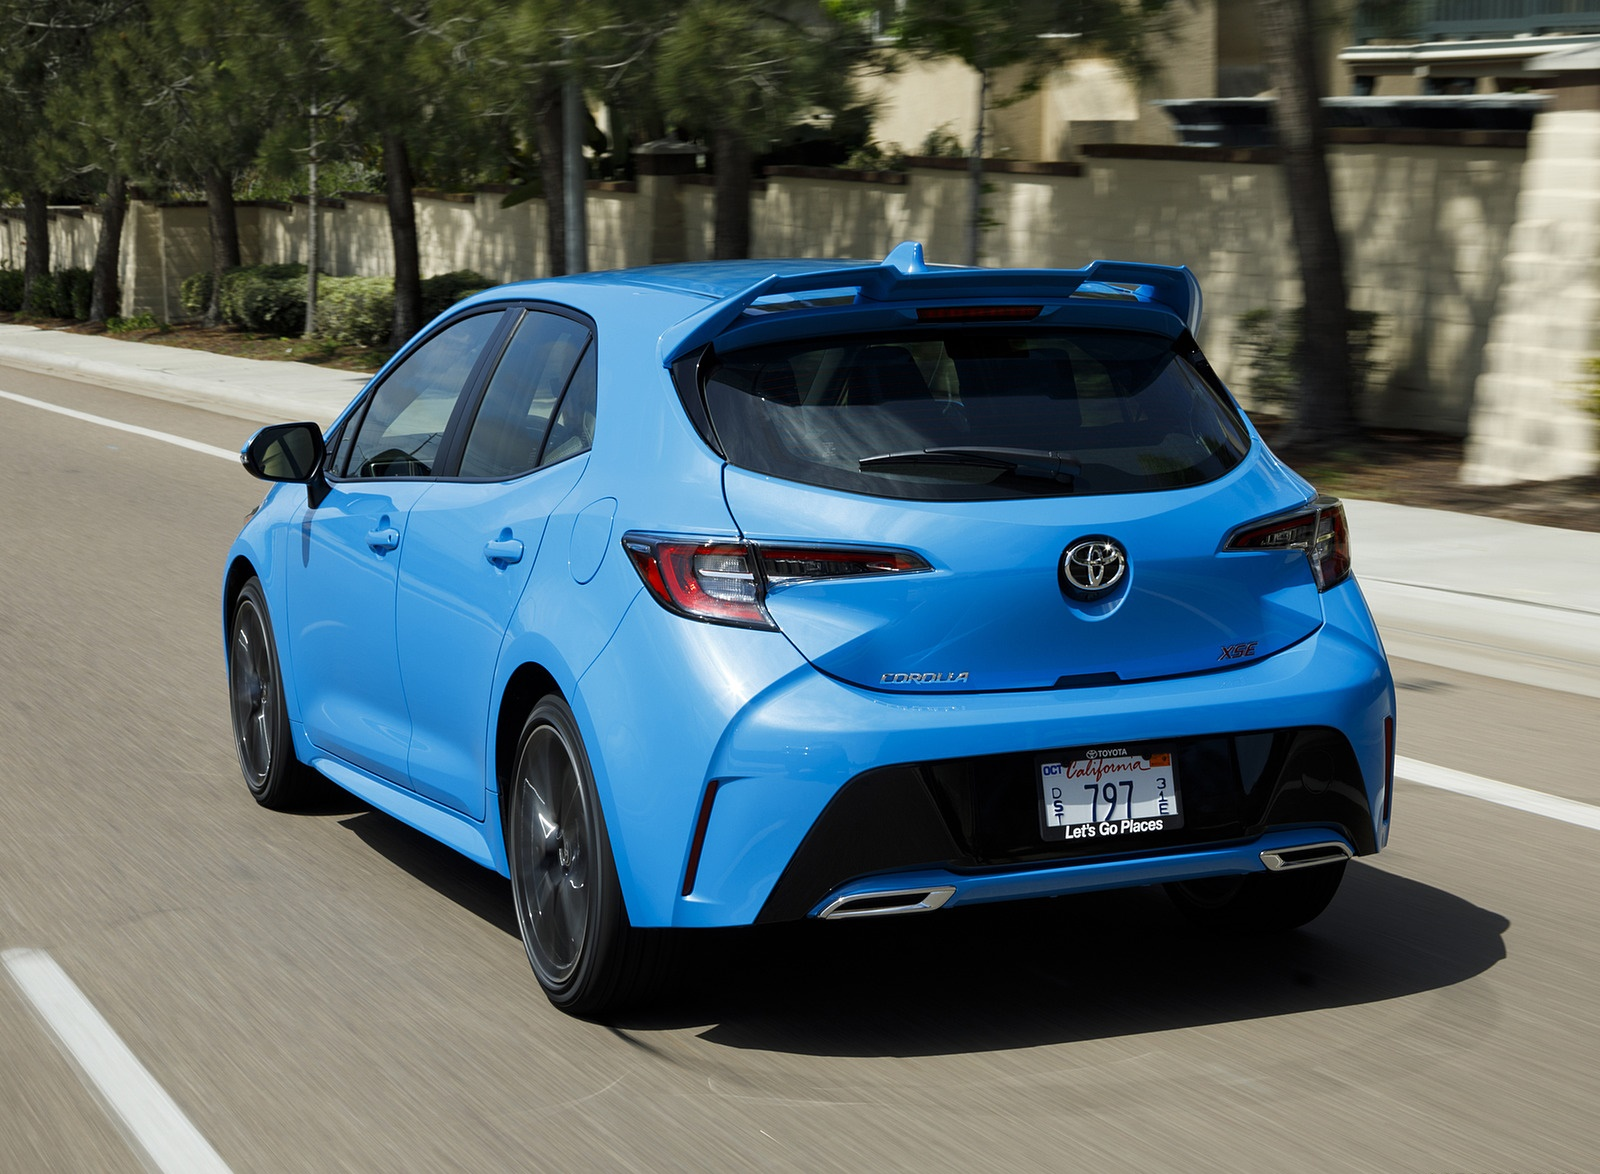 2019 Toyota Corolla Hatchback Rear Three-Quarter Wallpapers #29 of 75